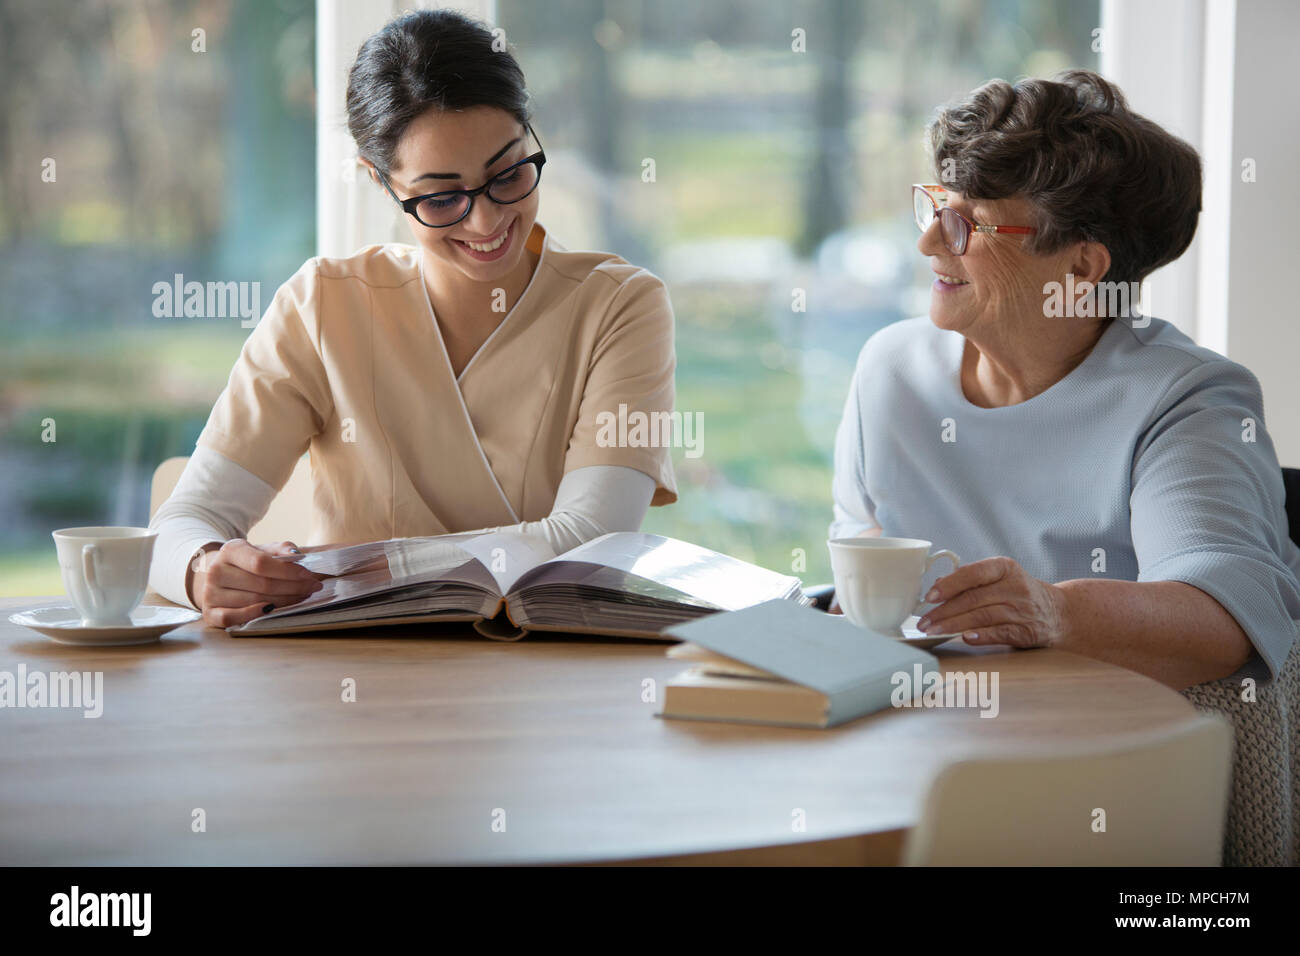 Happy senior woman spending time together with a tender caregiver sitting by a table and looking at family photo album against blurred background of w - Stock Image